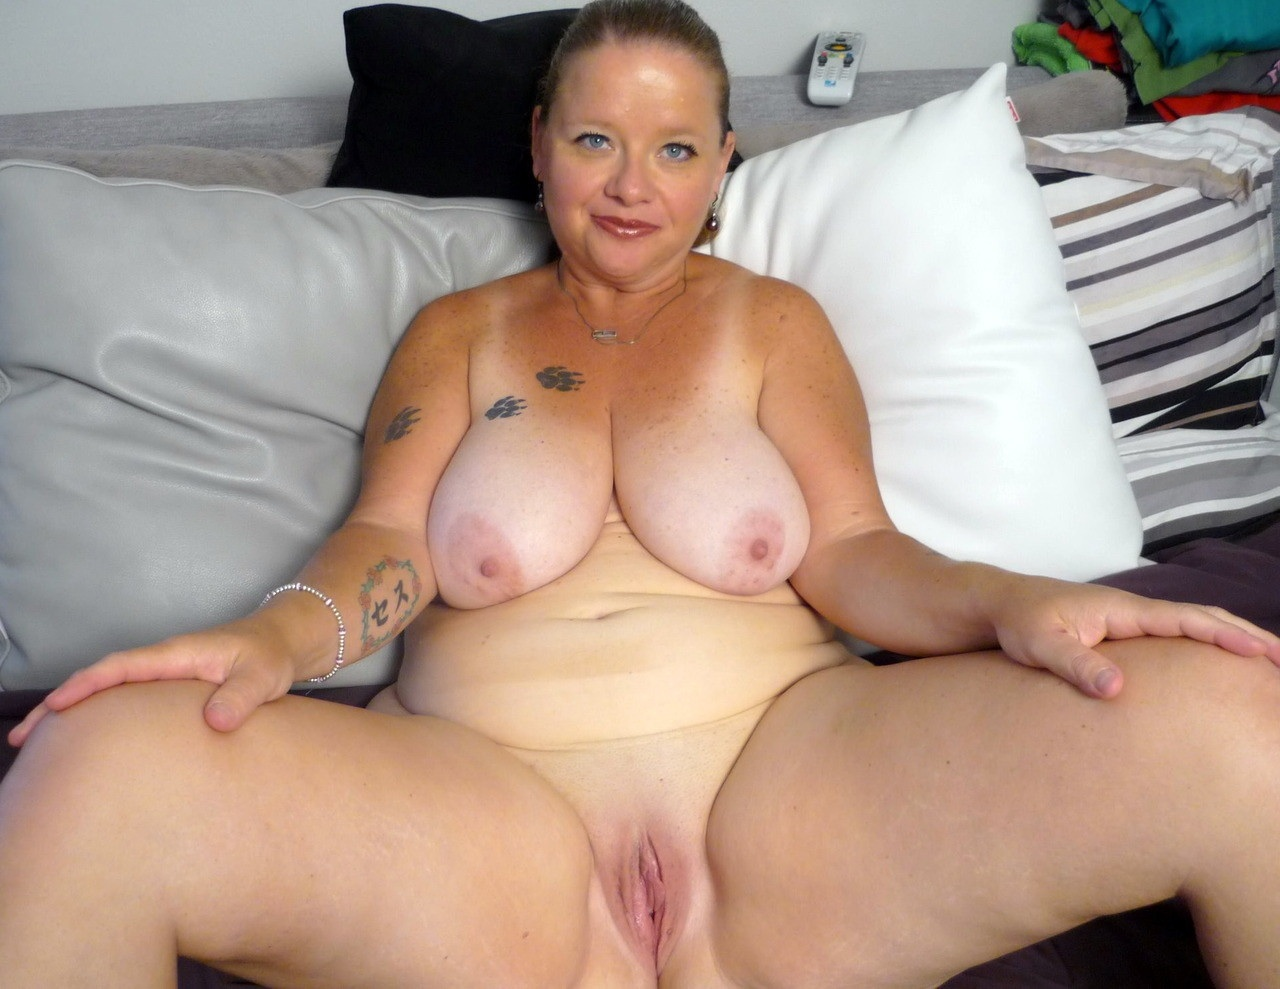 Mistress. one bbw spreading pussy hot Hot